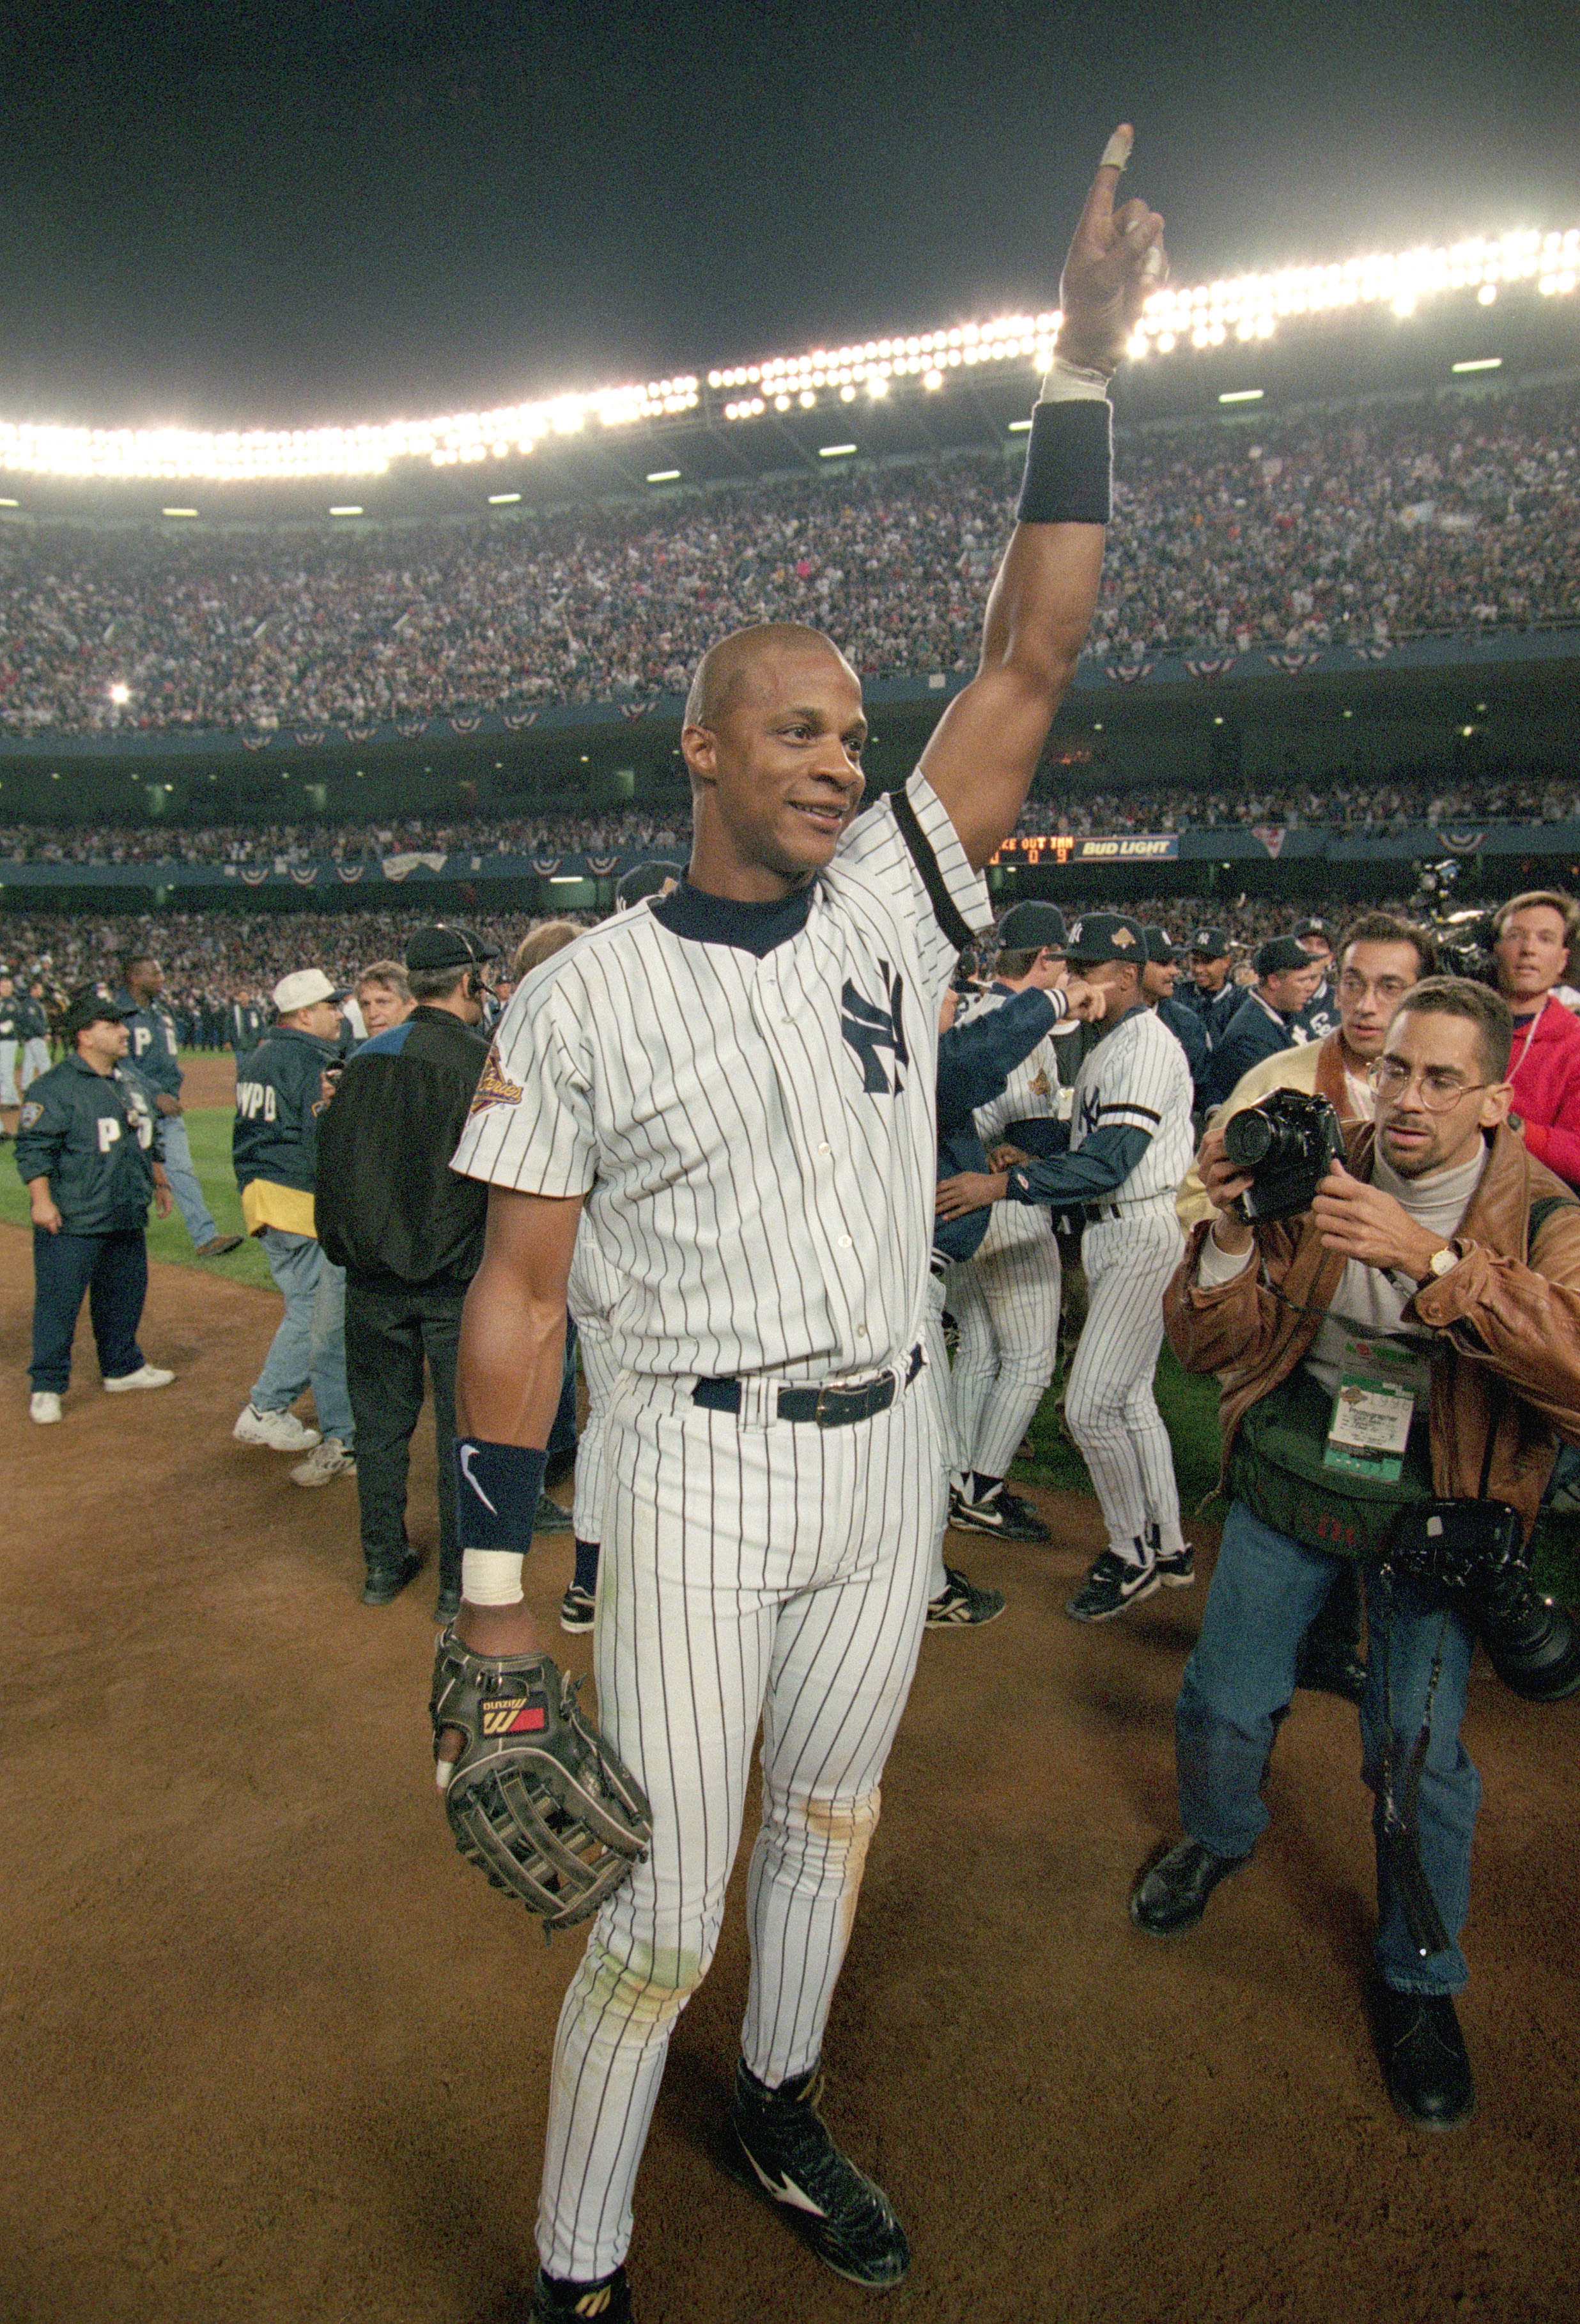 BRONX, NY - OCTOBER 26:  Darryl Strawberry #39 of the New York Yankees celebrates his team's victory in Game six of the 1996 World Series against the Atlanta Braves at Yankee Stadium on October 26, 1996 in the Bronx, New York. The Yankees defeated the Bra